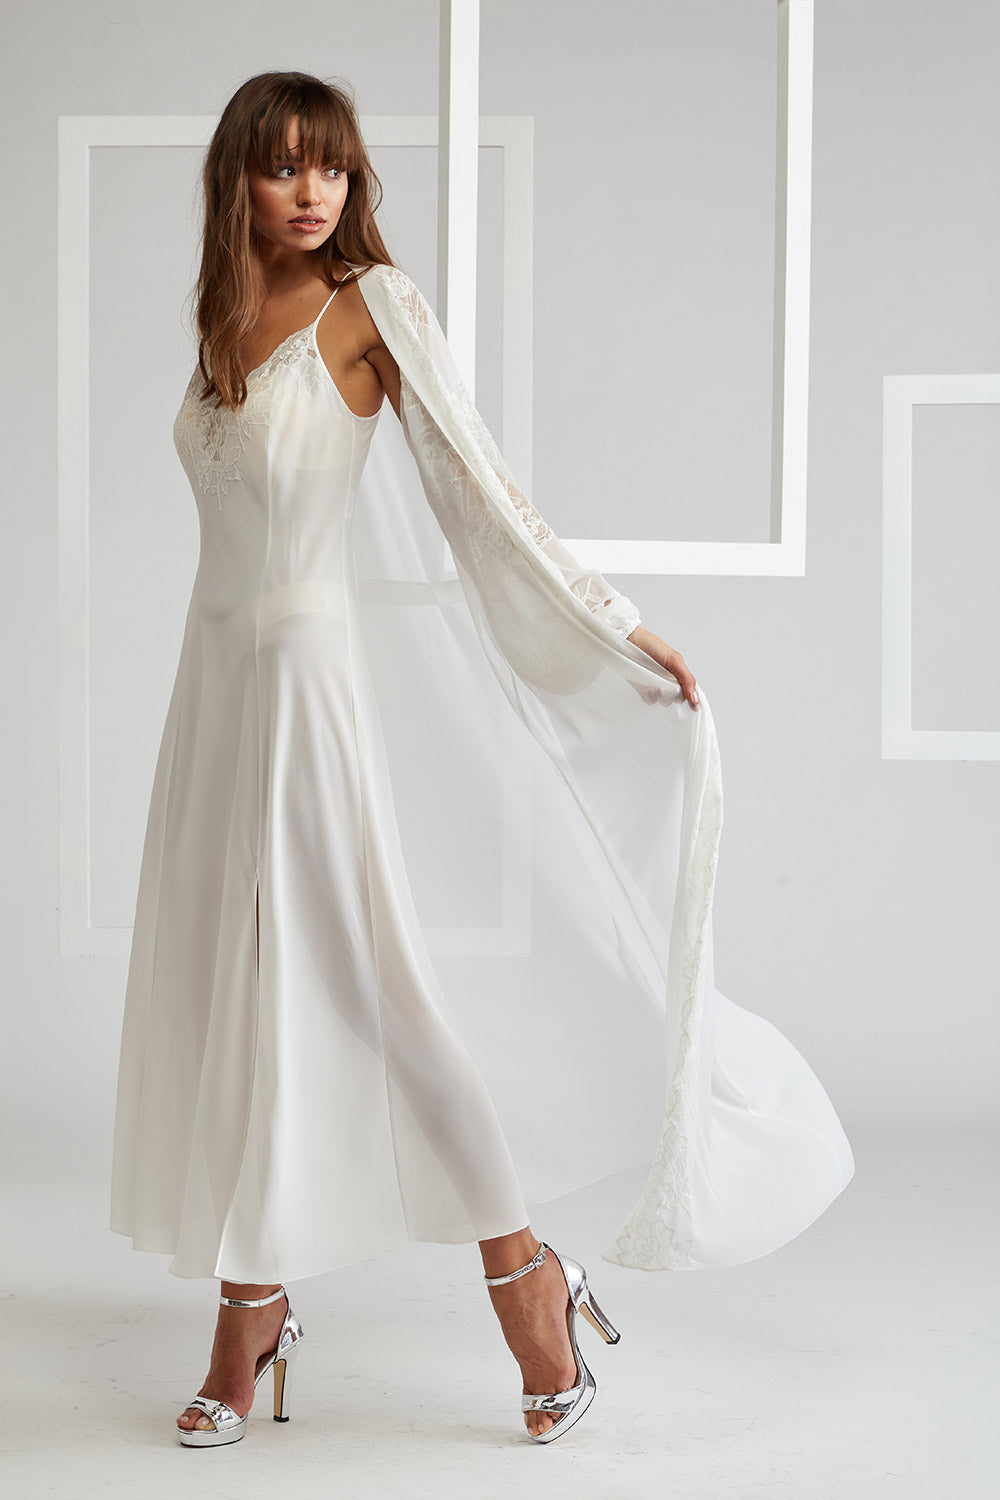 Trimmed Silk Chiffon Robe Set - Off White - Ecru - Emma